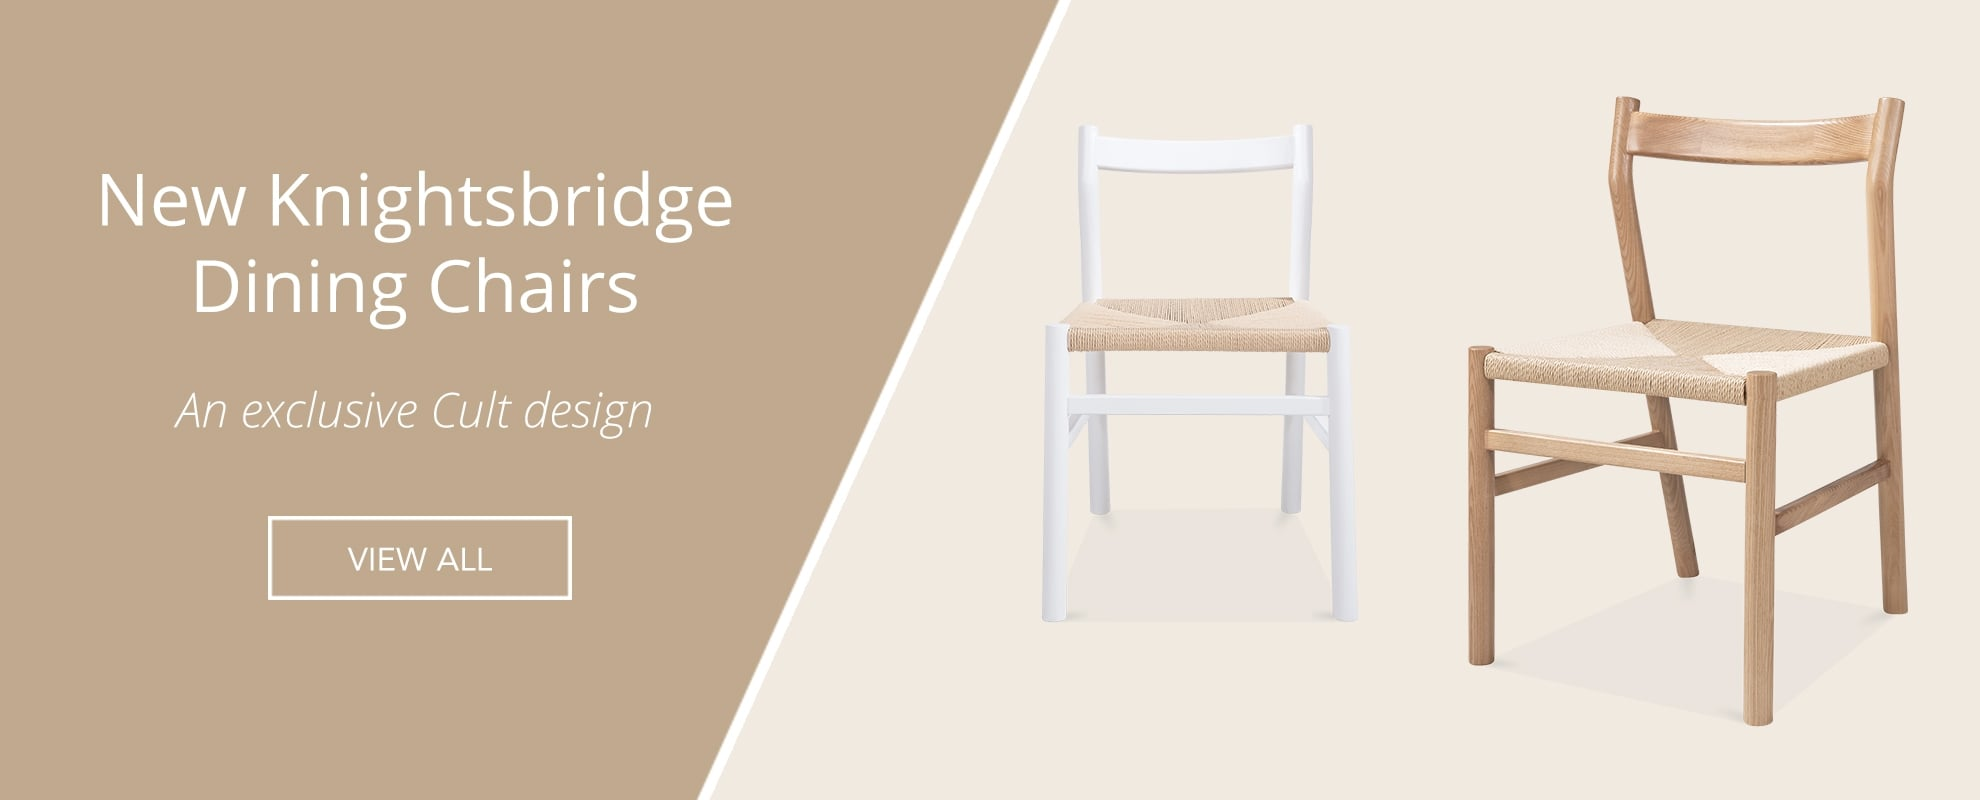 Knightsbridge Chairs